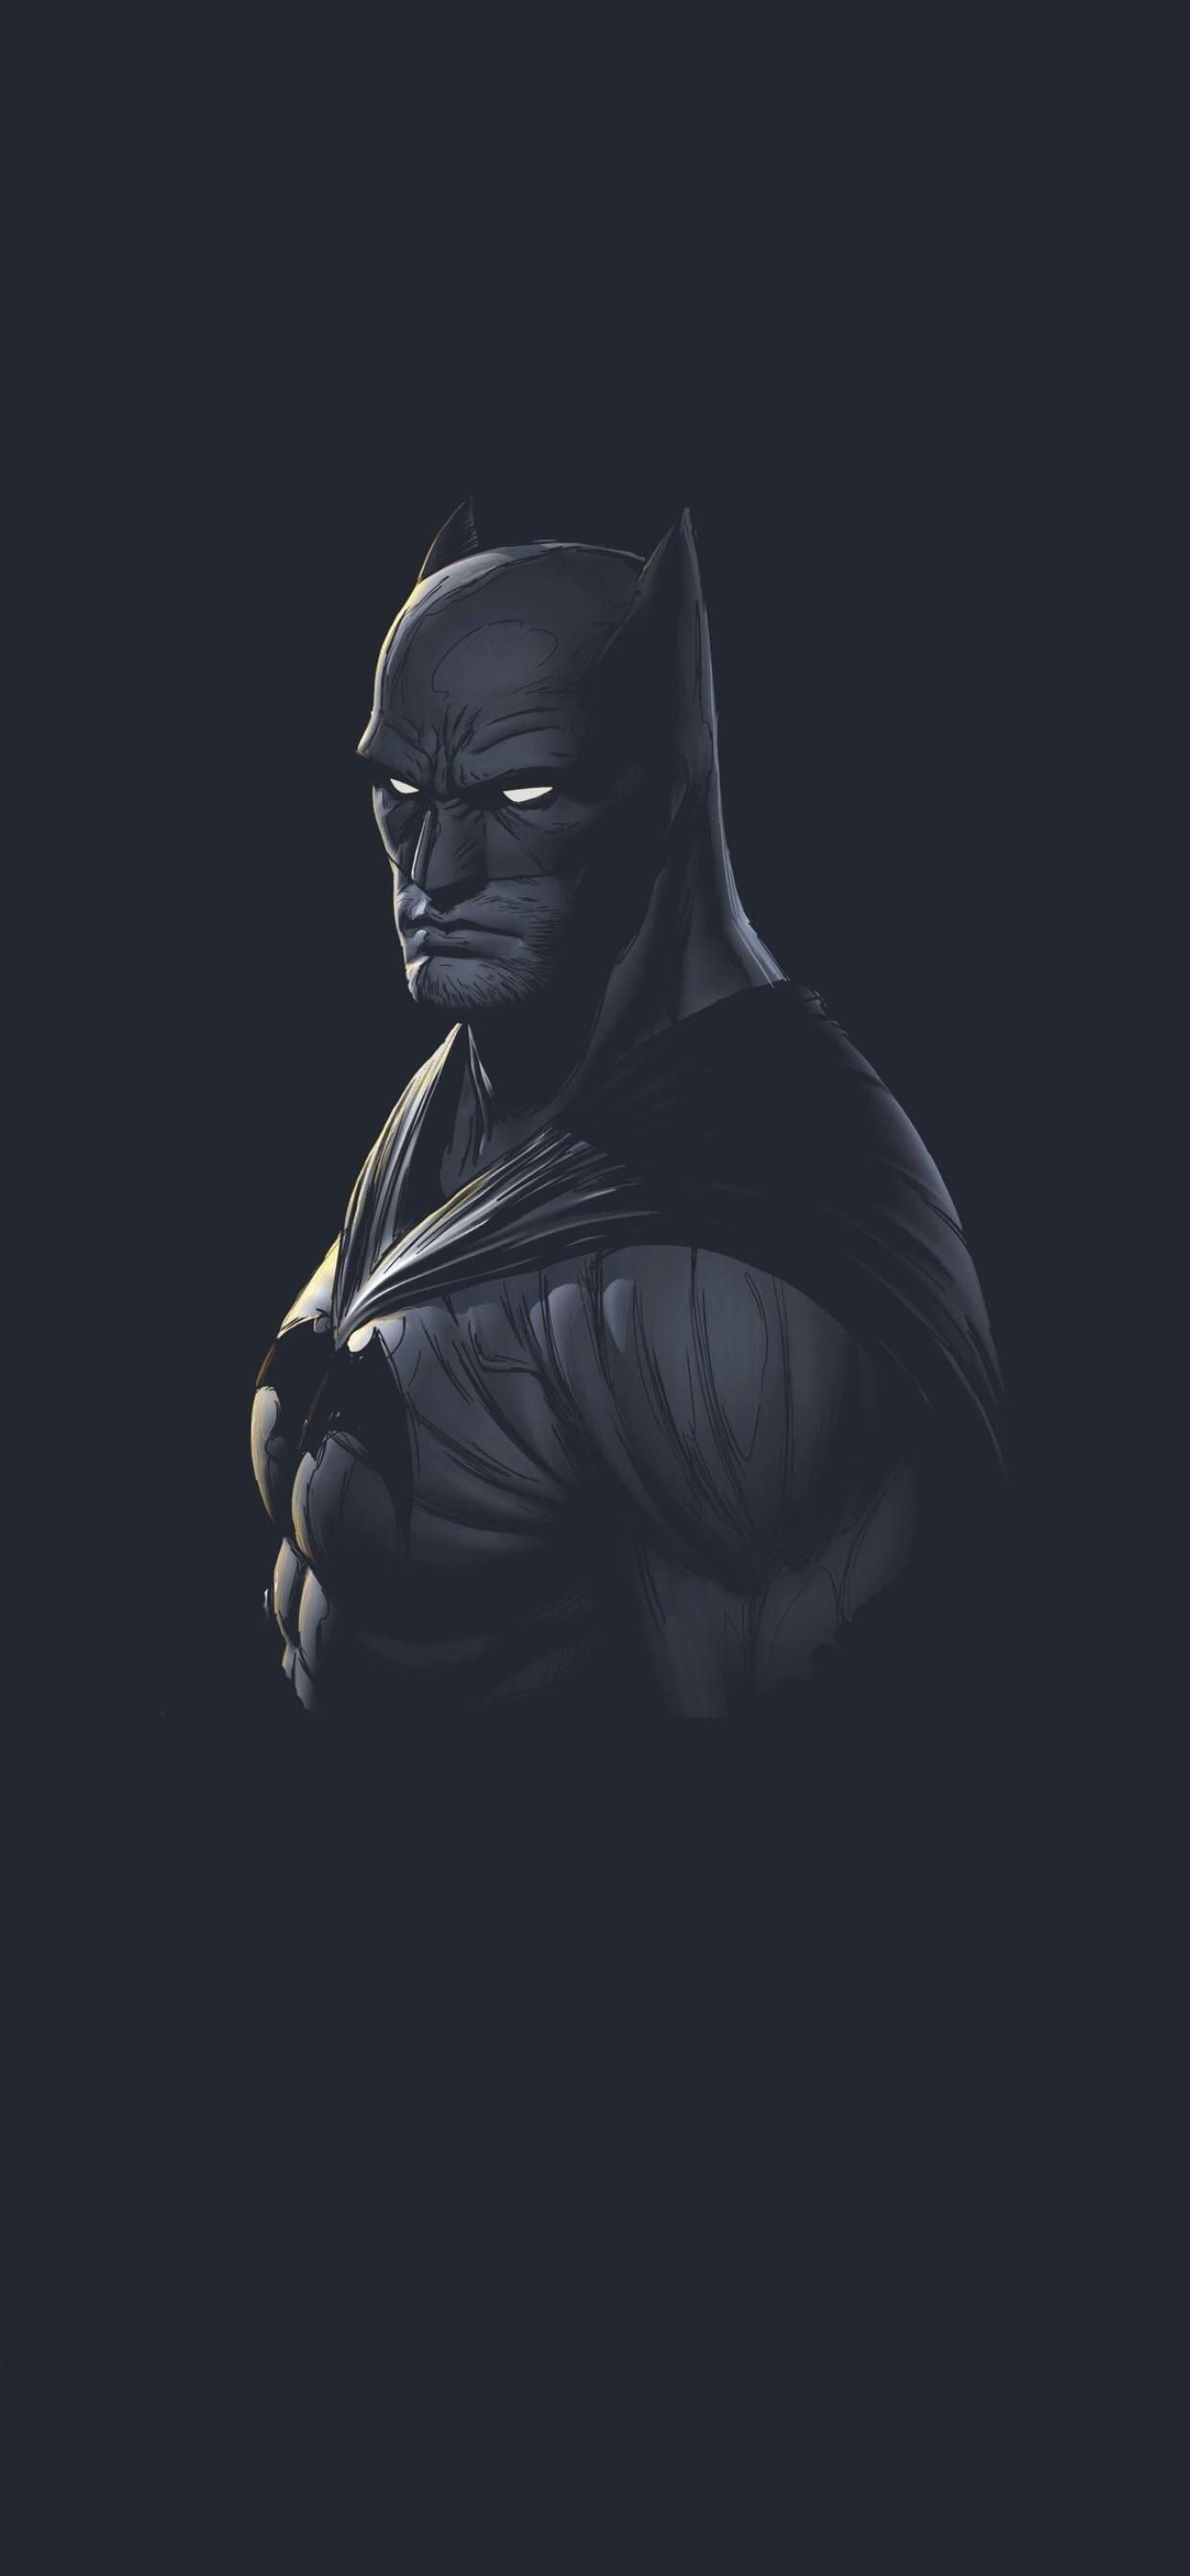 Batman Wallpaper In 2020 Batman Wallpaper Iphone Batman Wallpaper Batman